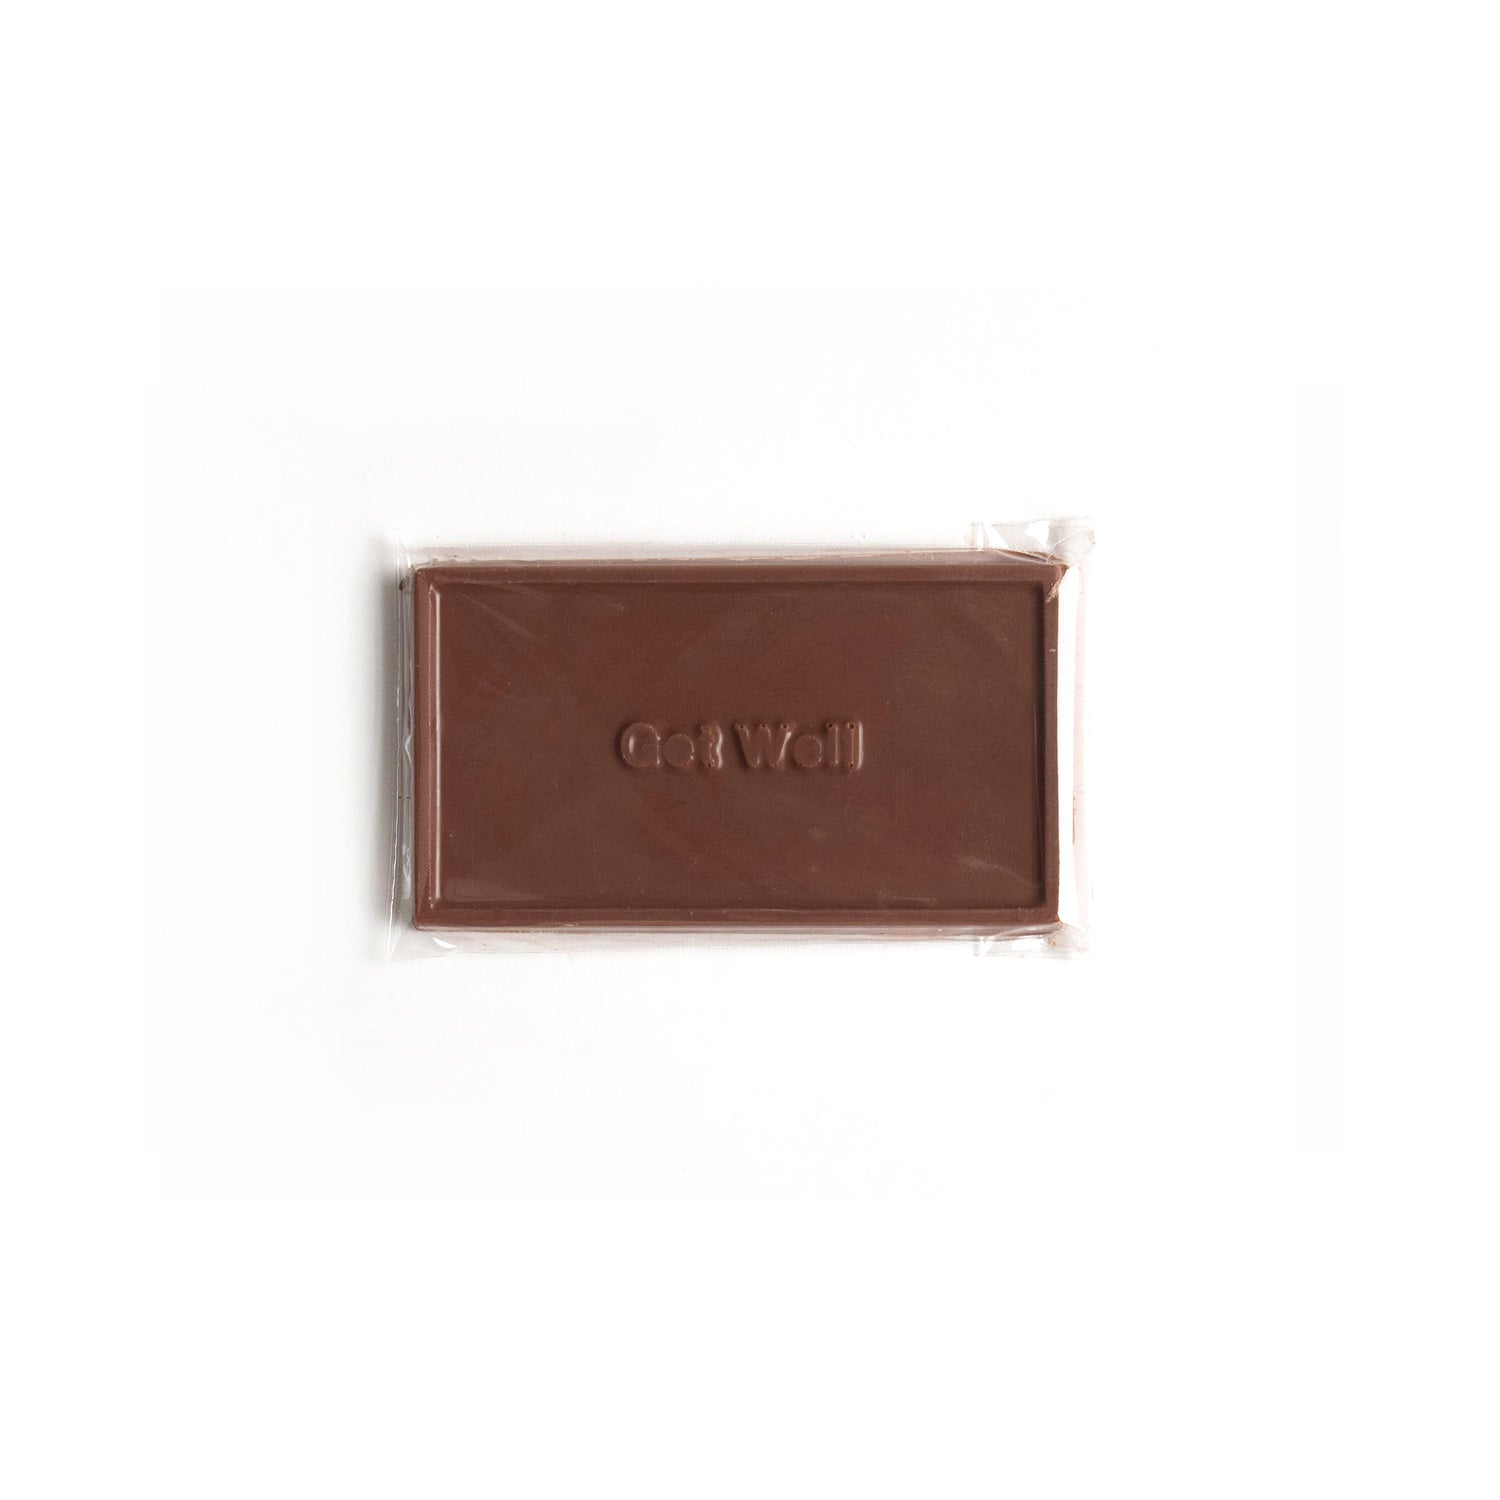 Product photo of milk chocolate get well bar